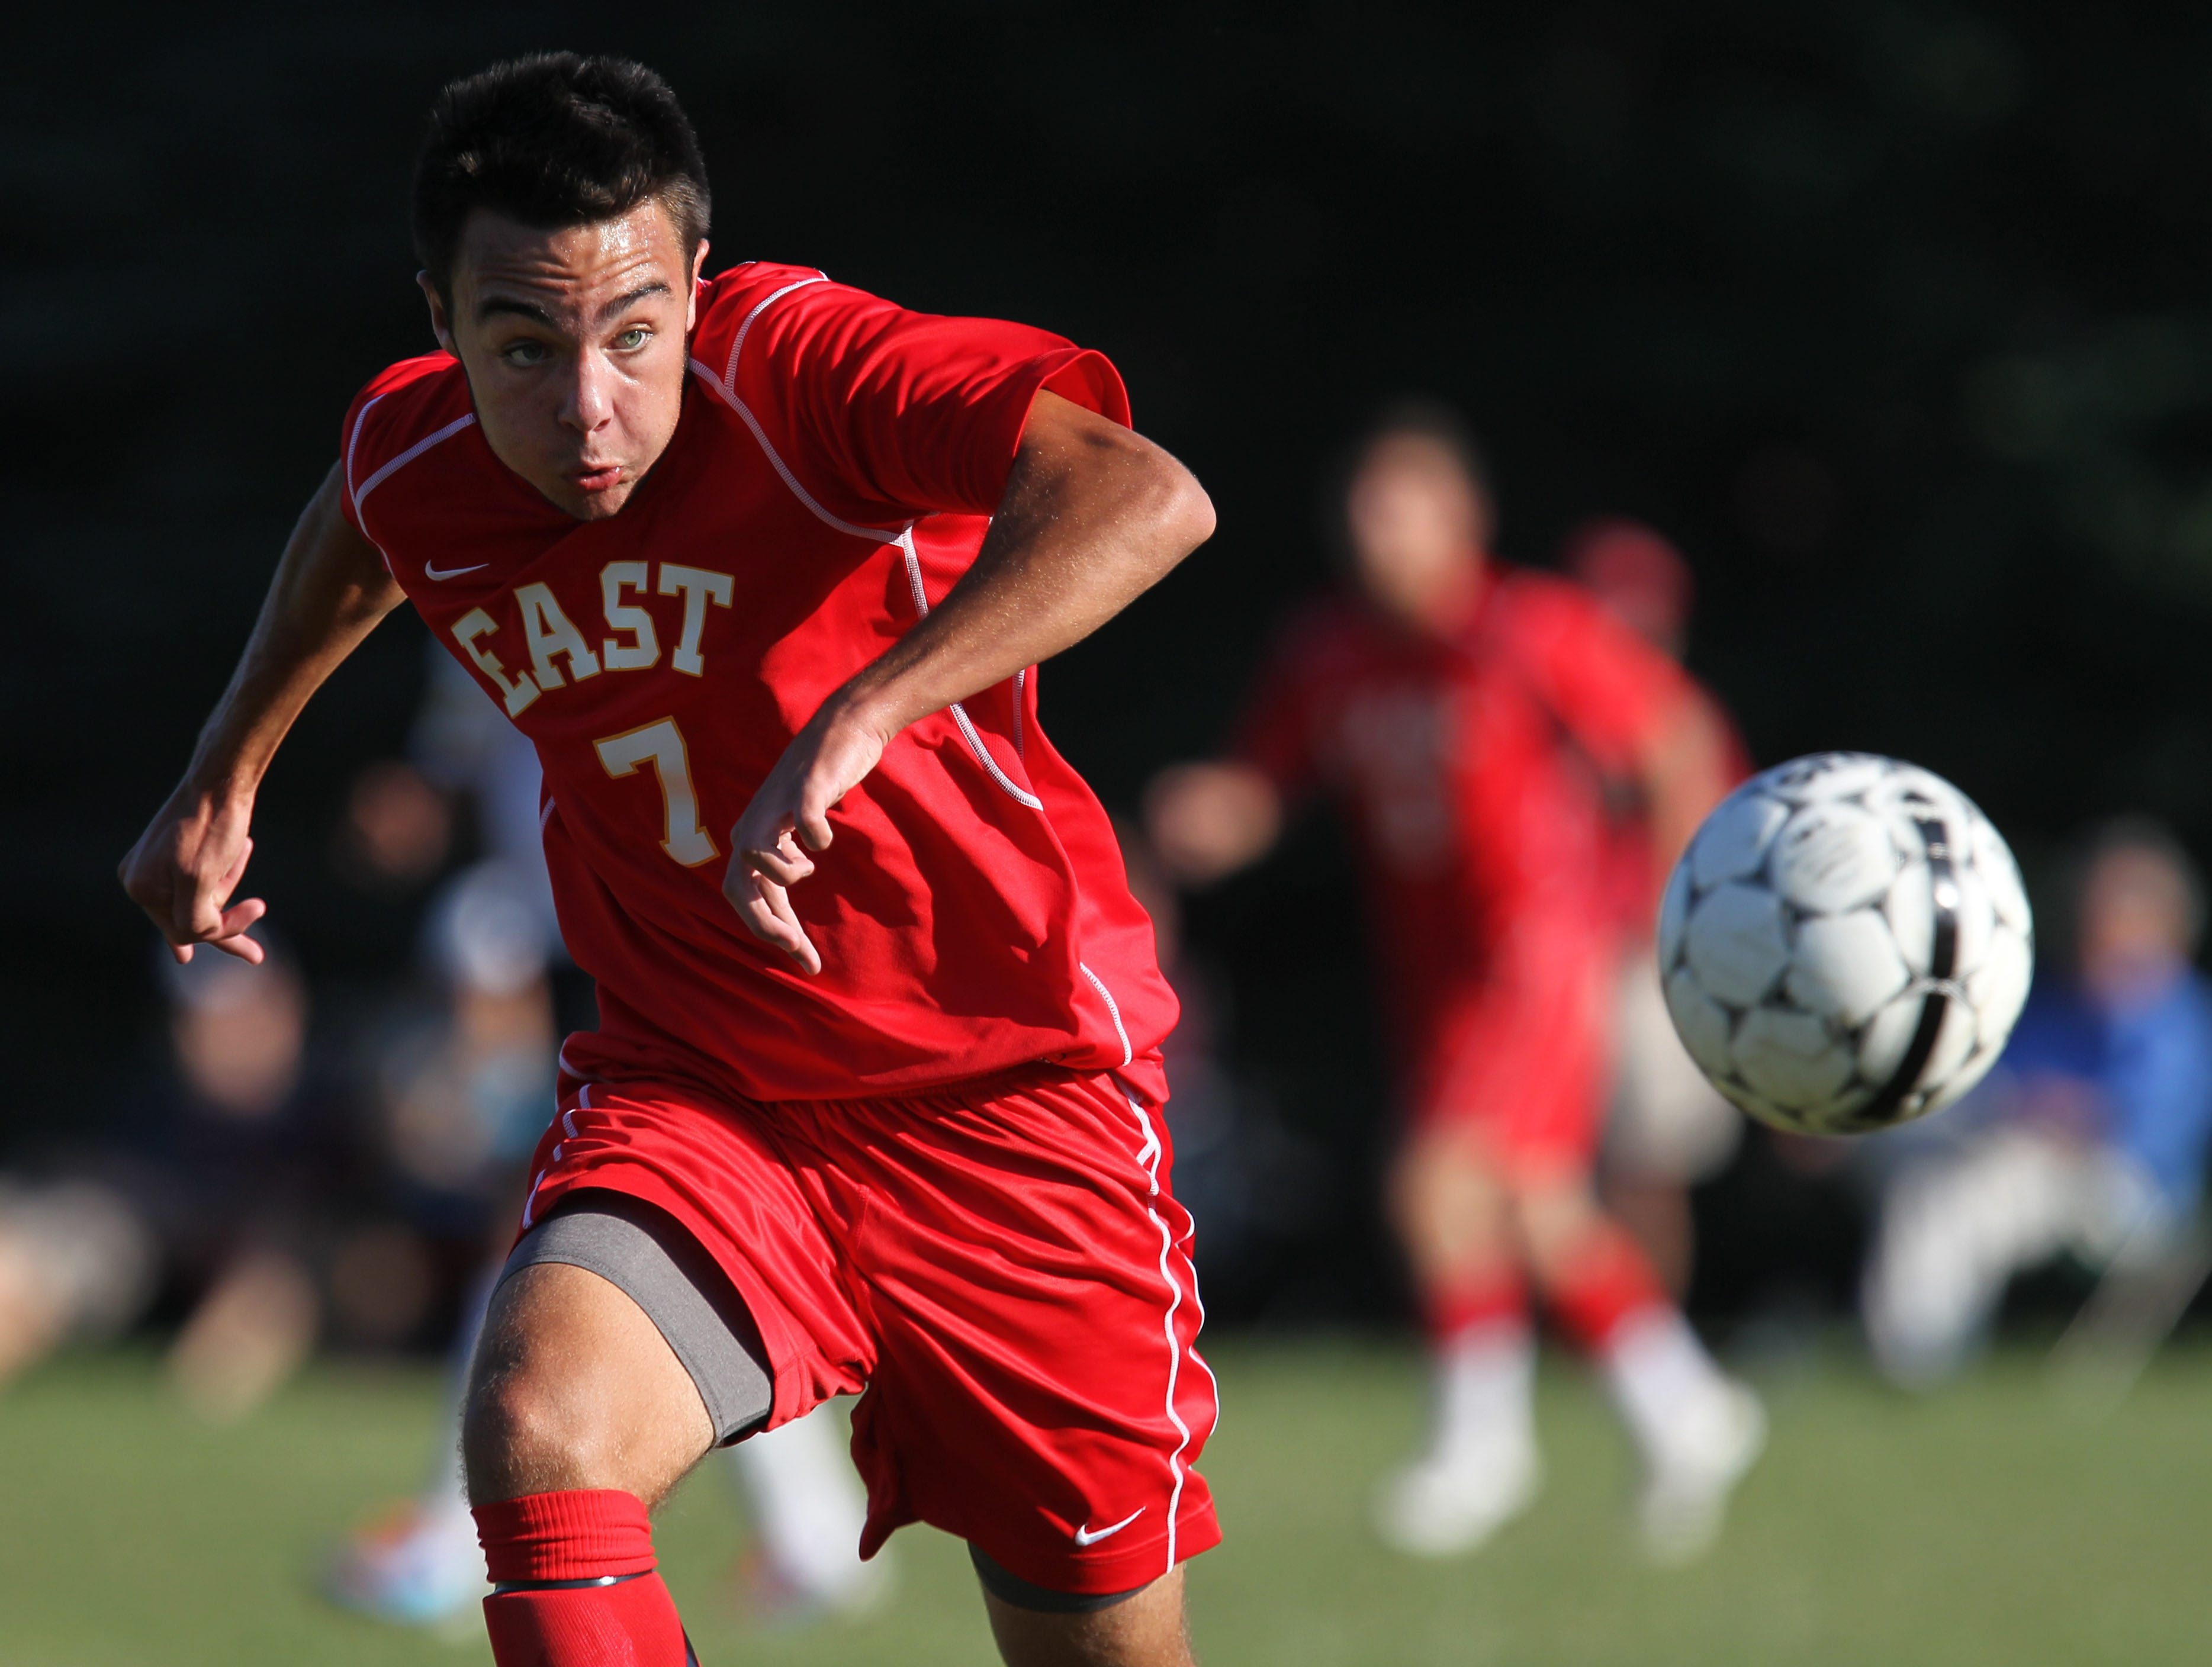 Williamsville East's Dan Griffin chases down a loose ball during the first half of the game against Hamburg on Thursday. Will East defeated Hamburg, 2-1.